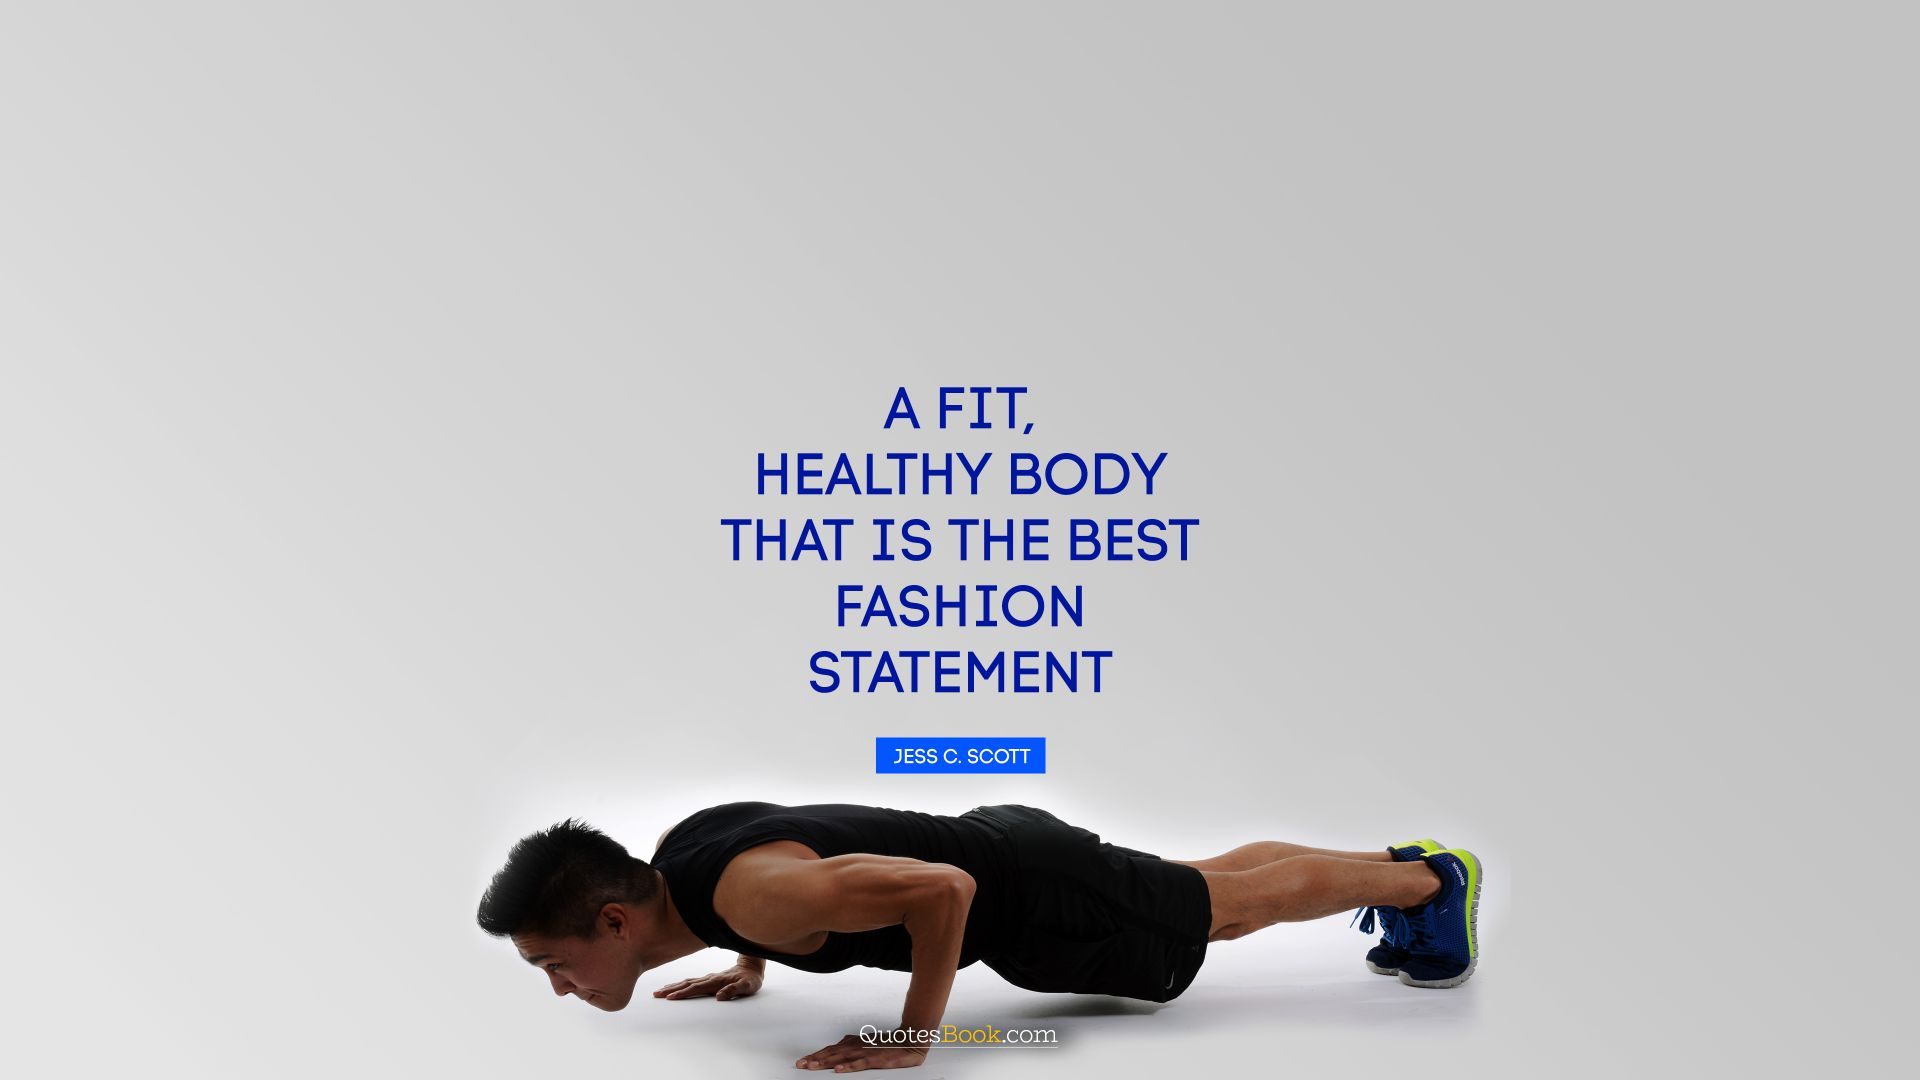 A fit, healthy body—that is the best fashion statement. - Quote by Jess C. Scott